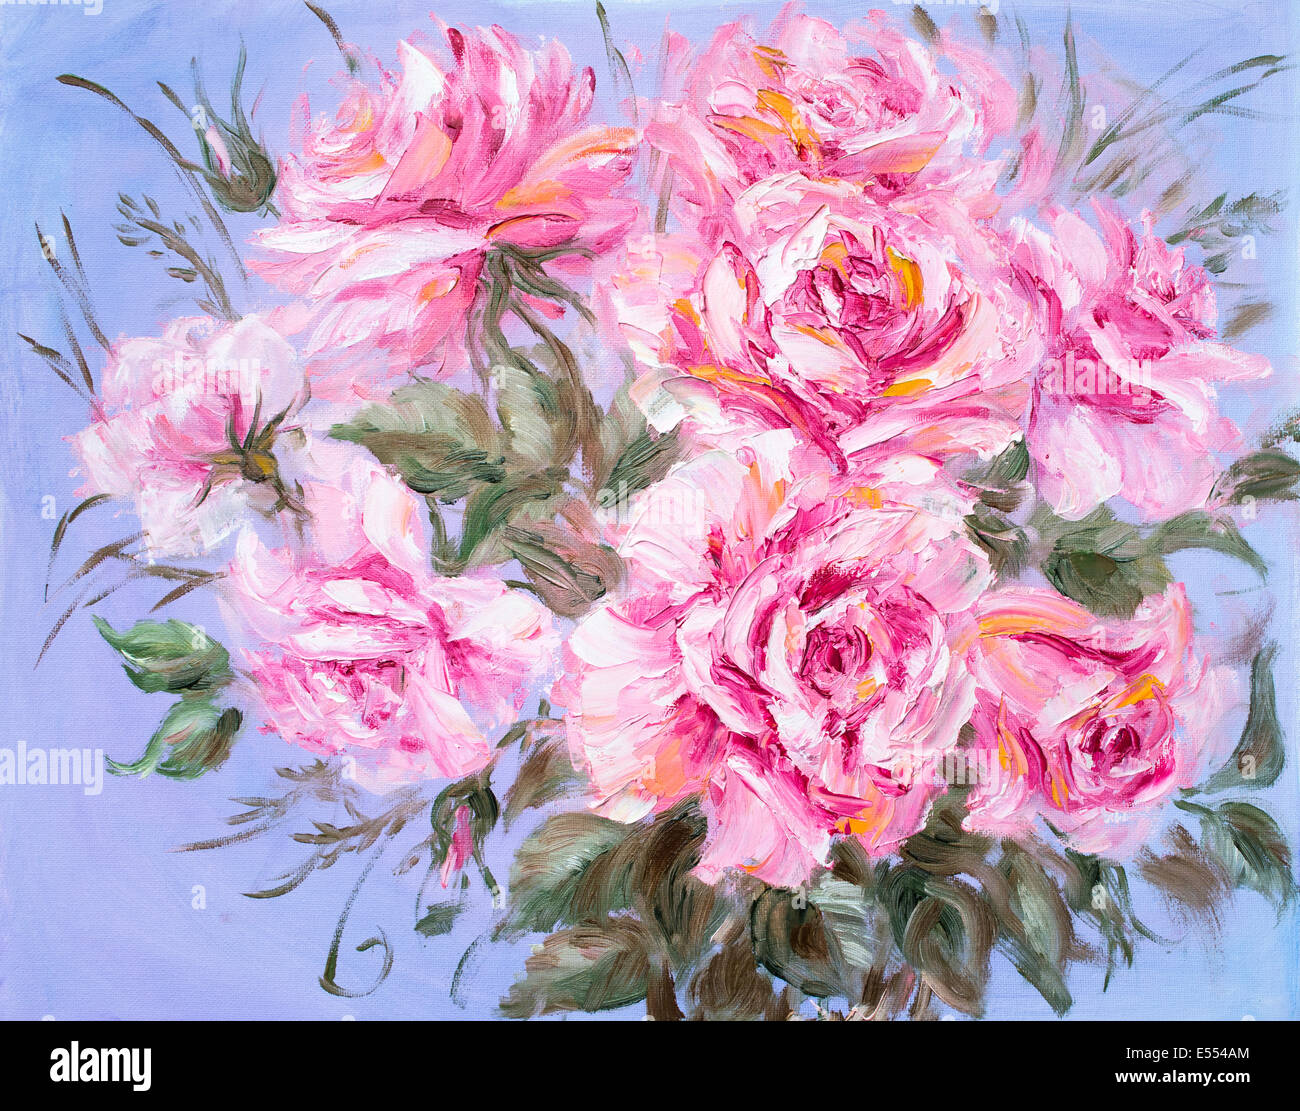 Beautiful Roses, oil painting on canvas - Stock Image